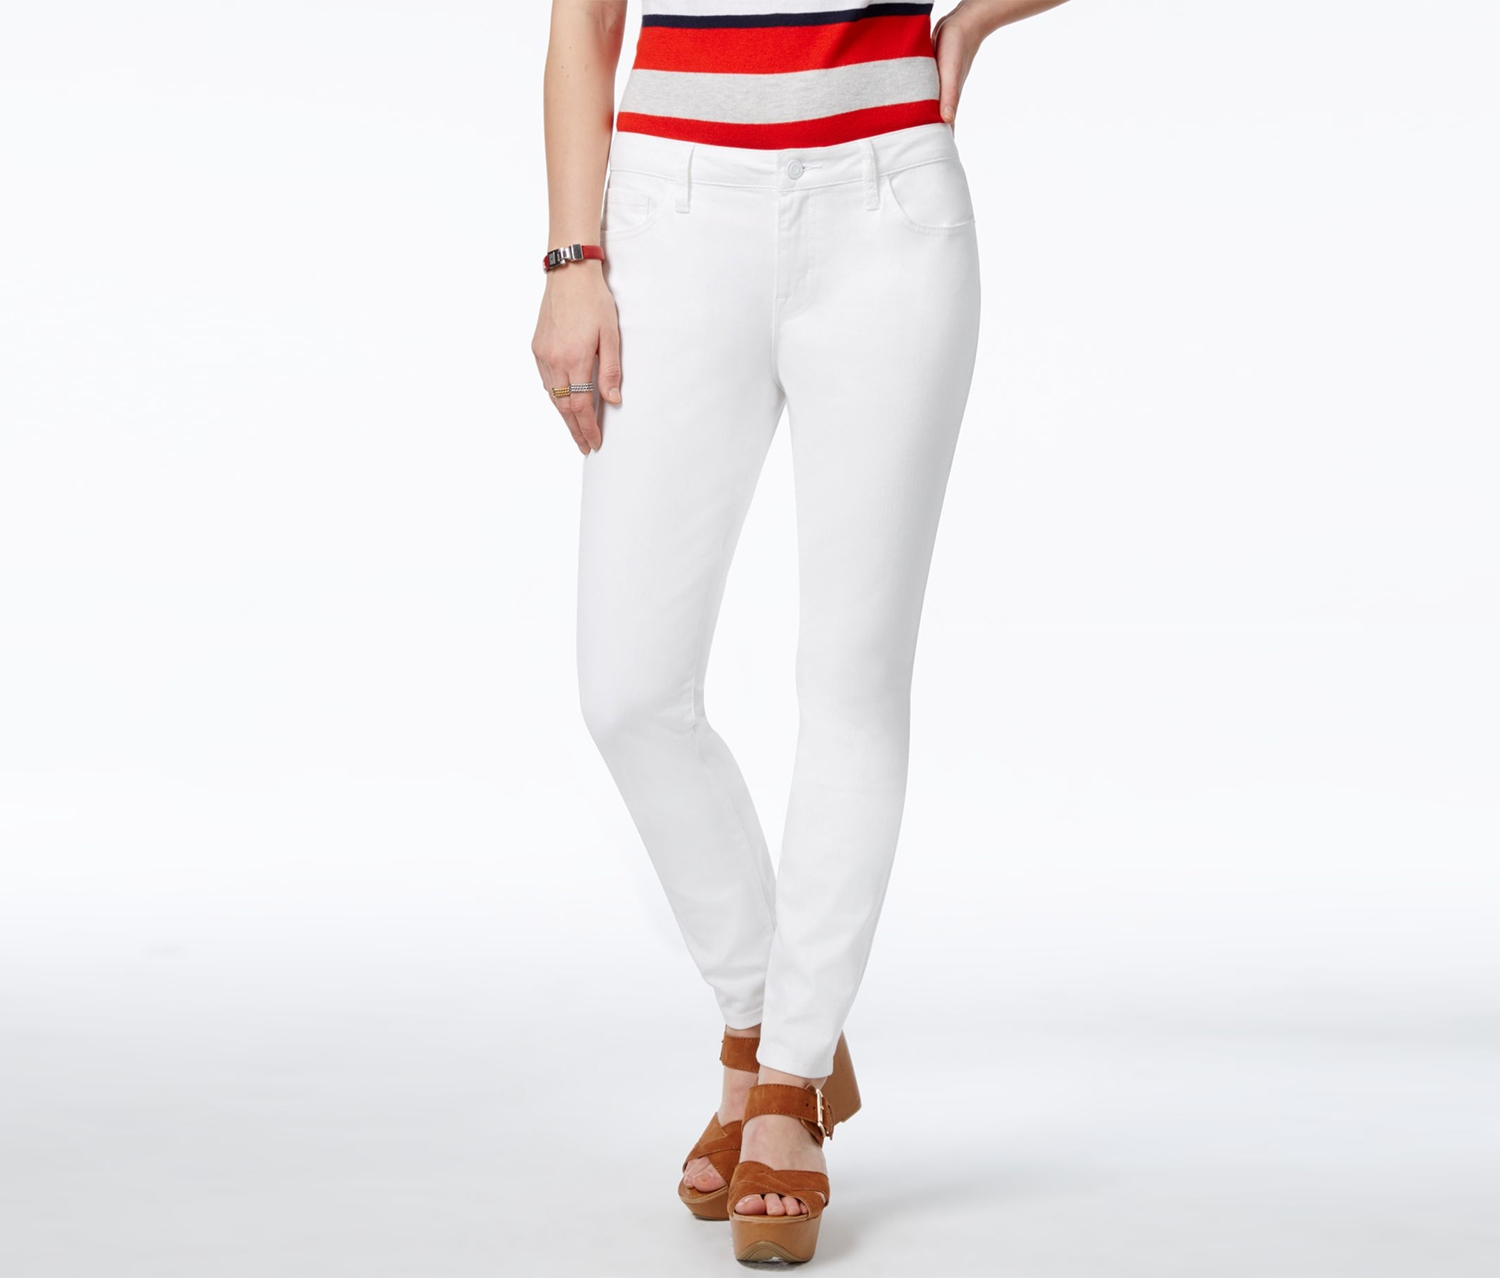 843e360f Home Women Clothing Jeans Tommy Hilfiger White Wash Skinny Jeans. Super  Price · Colors of Summer · Under LBP 20000. 4/7665640100.jpg